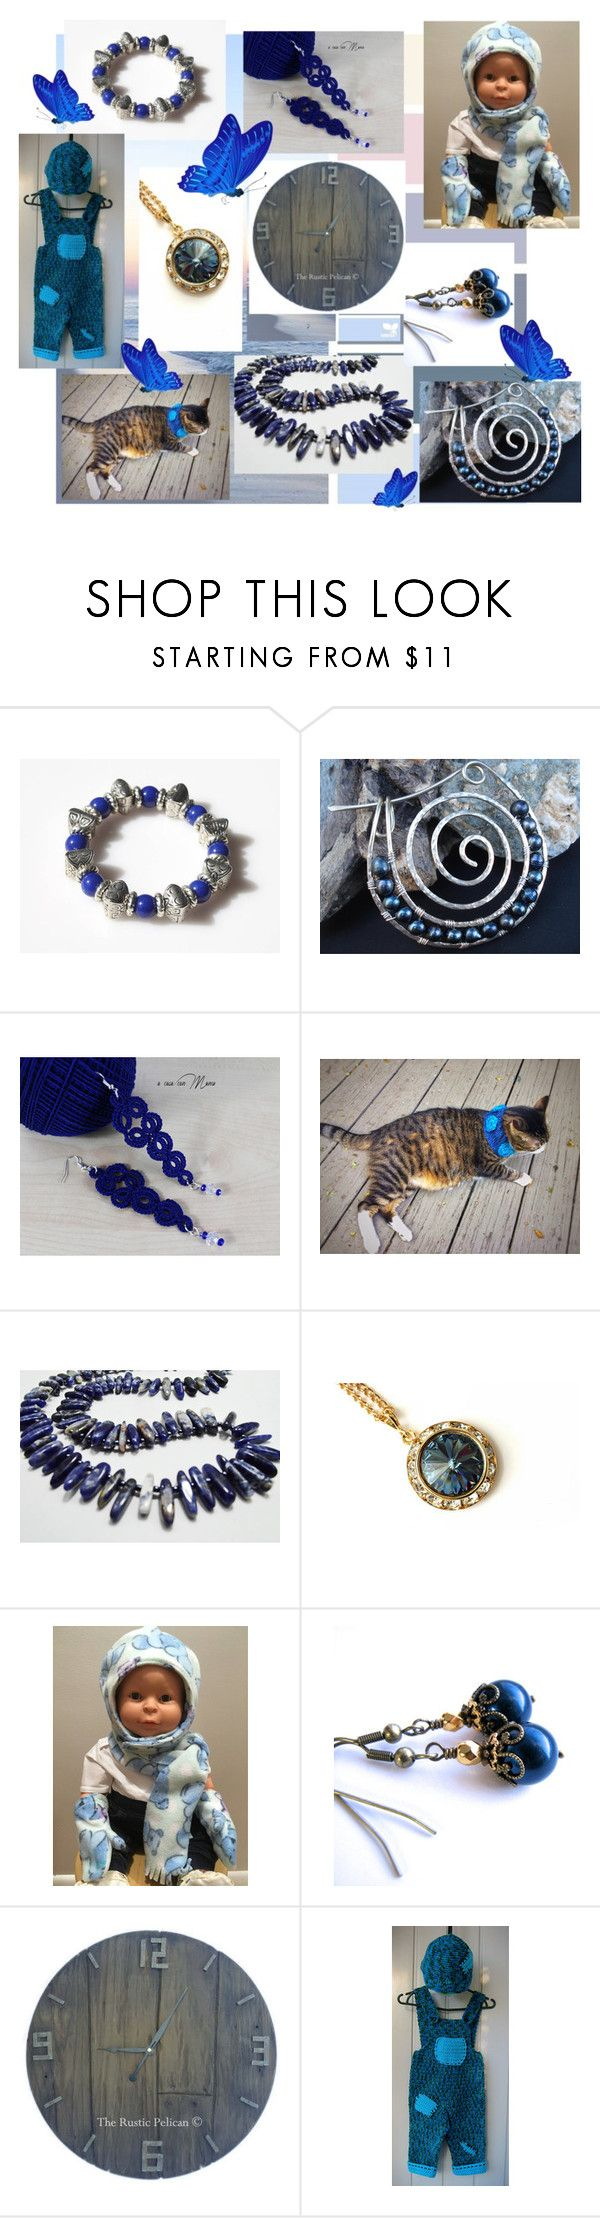 """""""I love the blue!"""" by lwitsa62 ❤ liked on Polyvore featuring interior, interiors, interior design, home, home decor and interior decorating"""